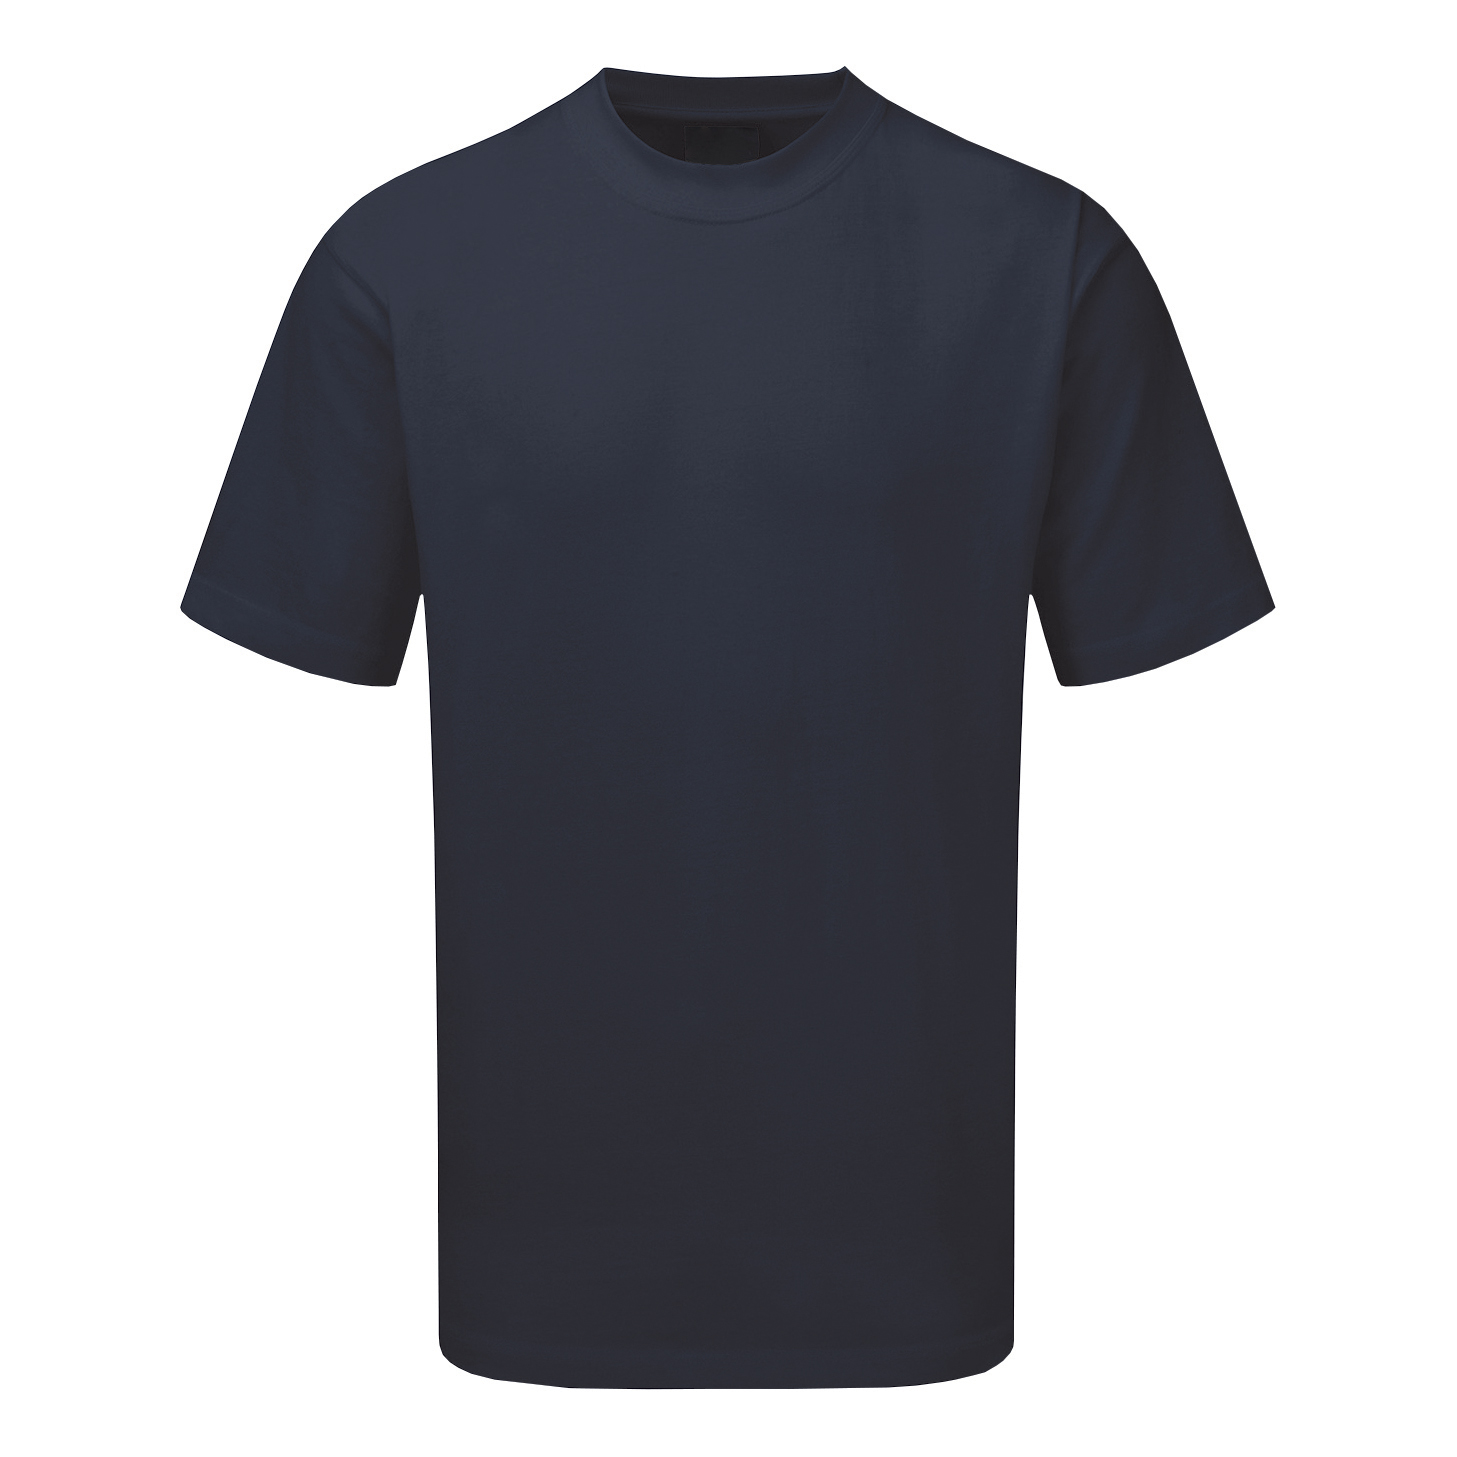 Premium T-Shirt Polycotton Triple Stitched Medium Navy Blue Ref CLCTSHWNM *Up to 3 Day Leadtime*